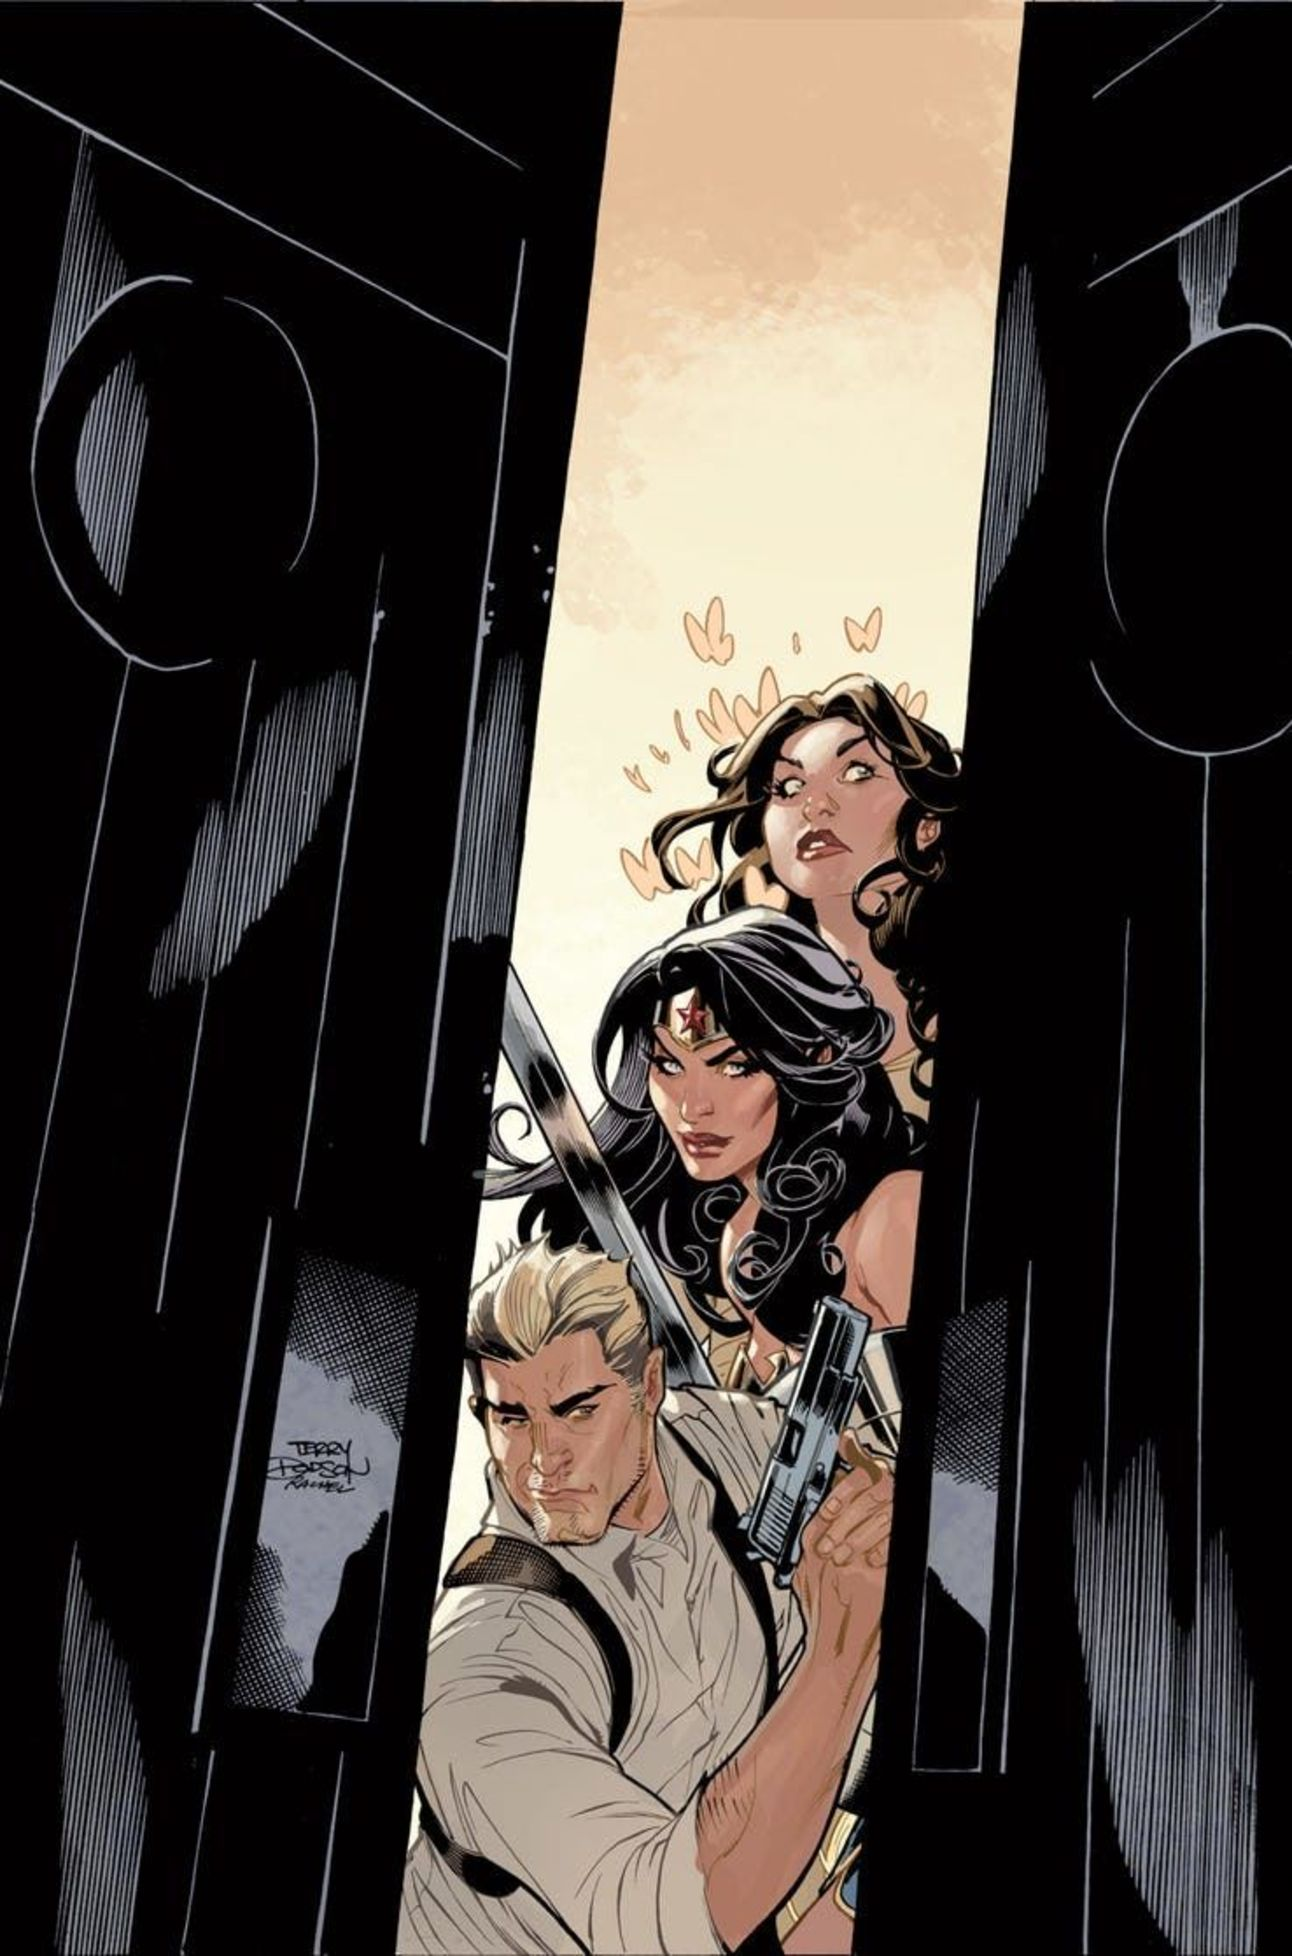 ccb6e5ef2 DC Comics single-issue solicitations for May 2019 DC Comics single ...